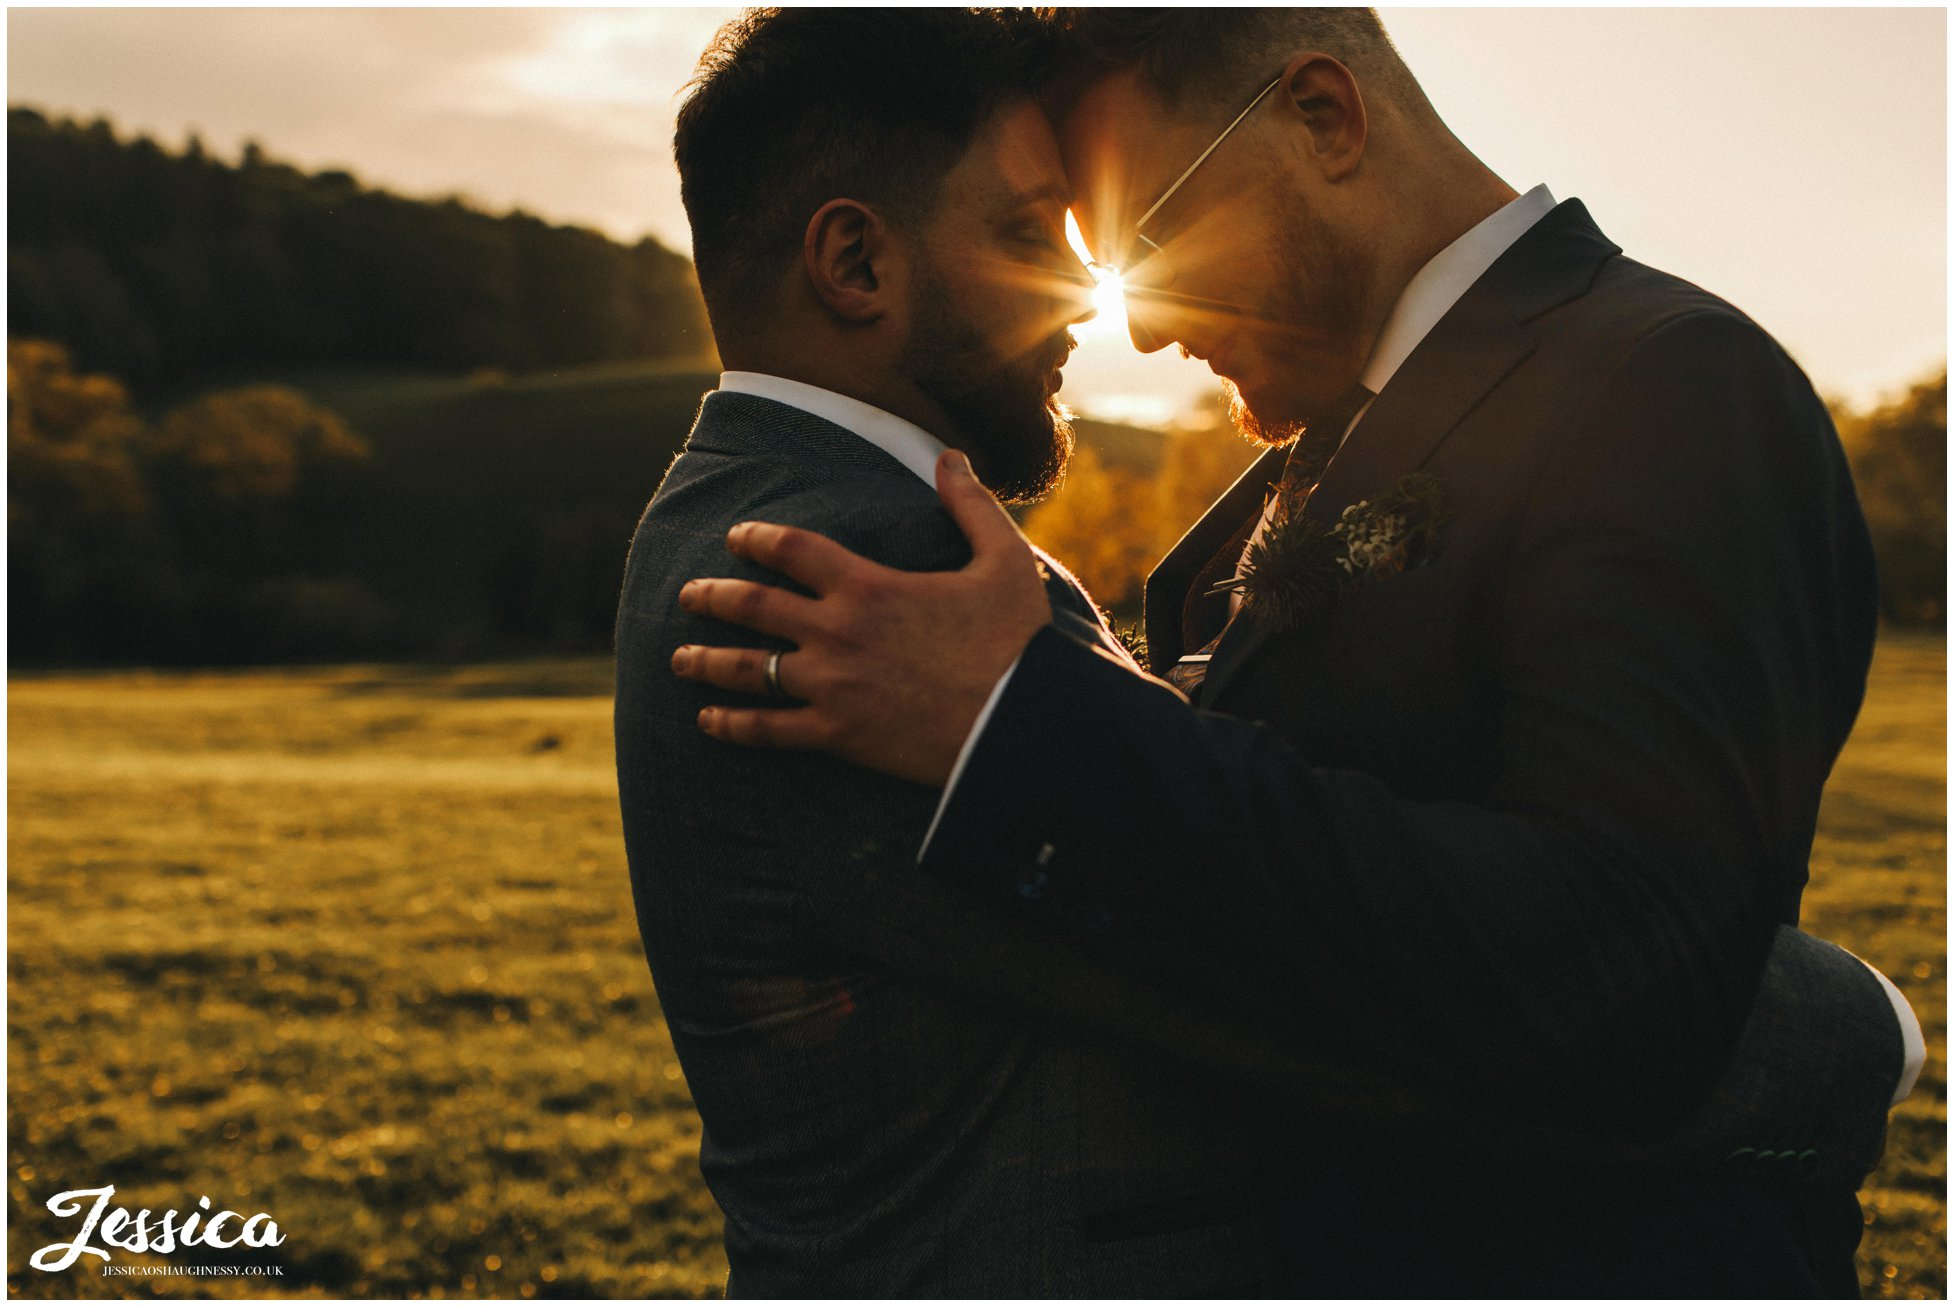 the grooms hold each other in the golden evening light